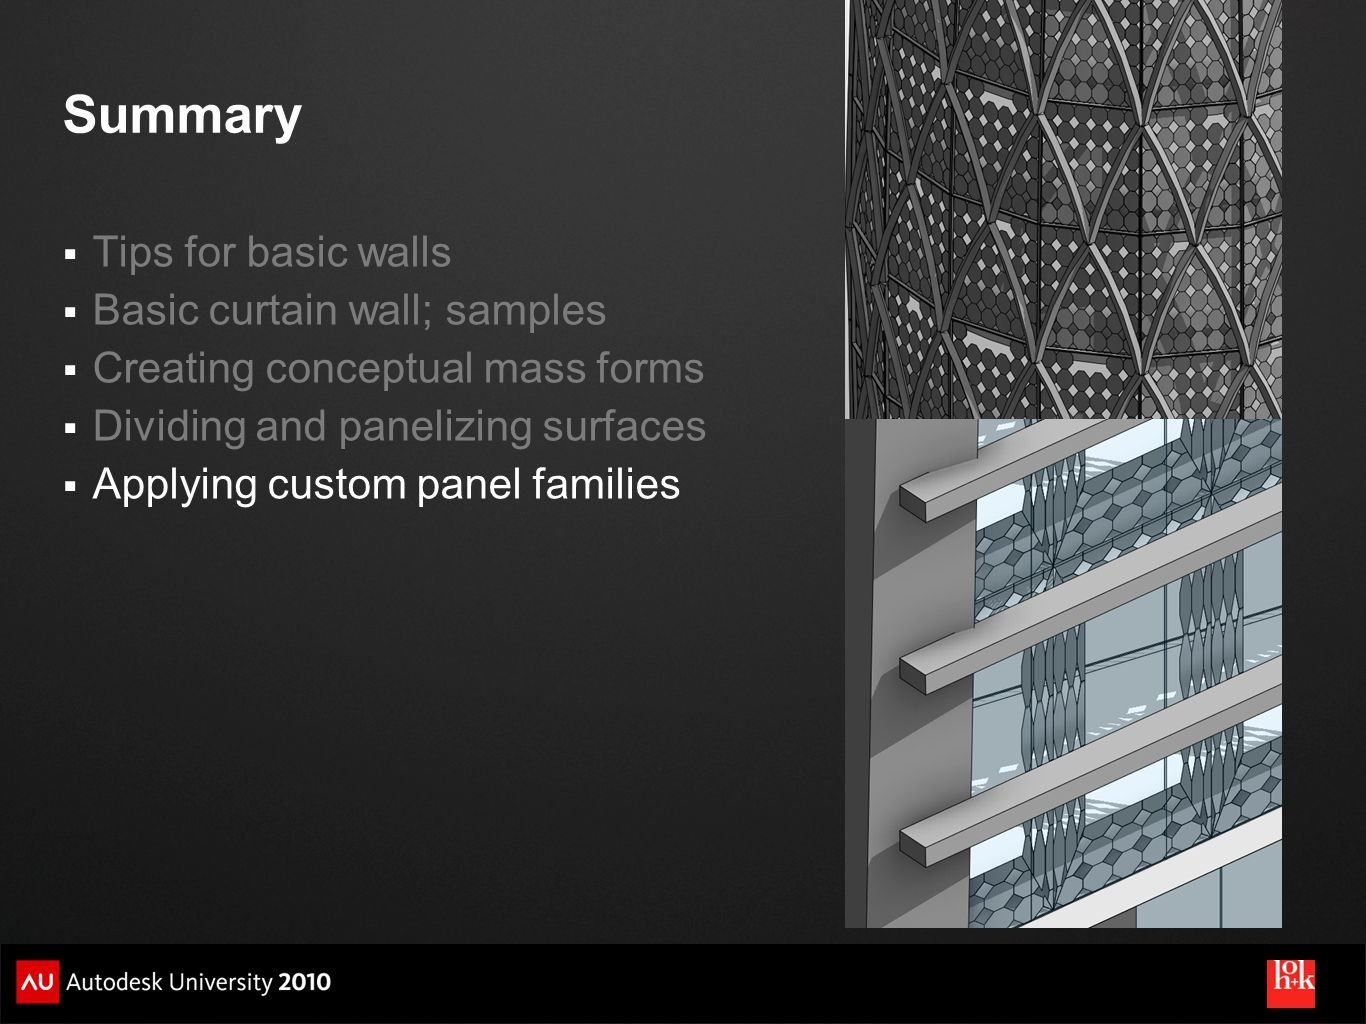 Summary Tips for basic walls Basic curtain wall; samples Creating conceptual mass forms Dividing and panelizing surfaces Applying custom panel families